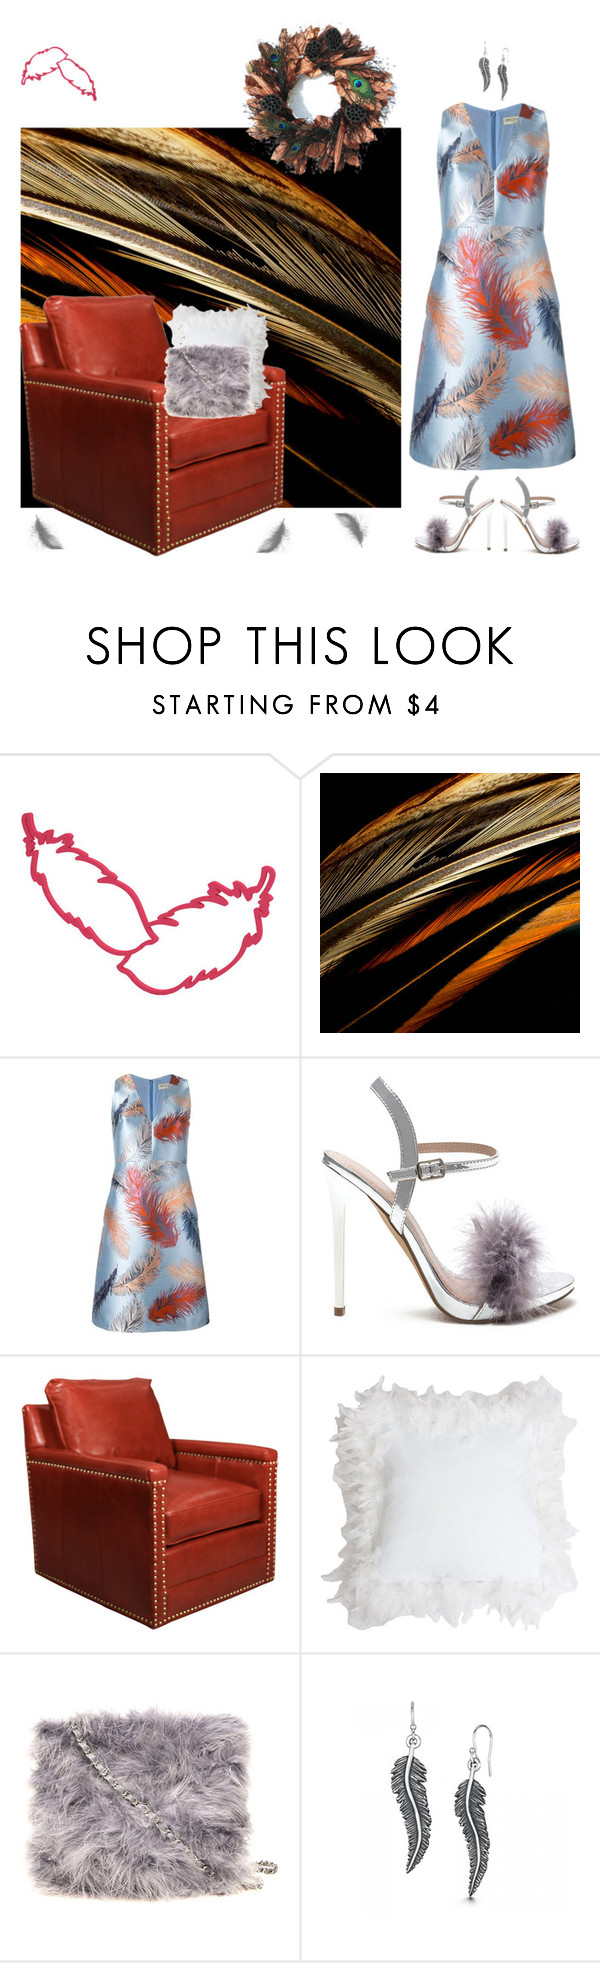 """""""Feather Your World!"""" by bevmardesigns ❤ liked on Polyvore featuring Emilio Pucci, Thro, Dorothy Perkins and Frontgate"""